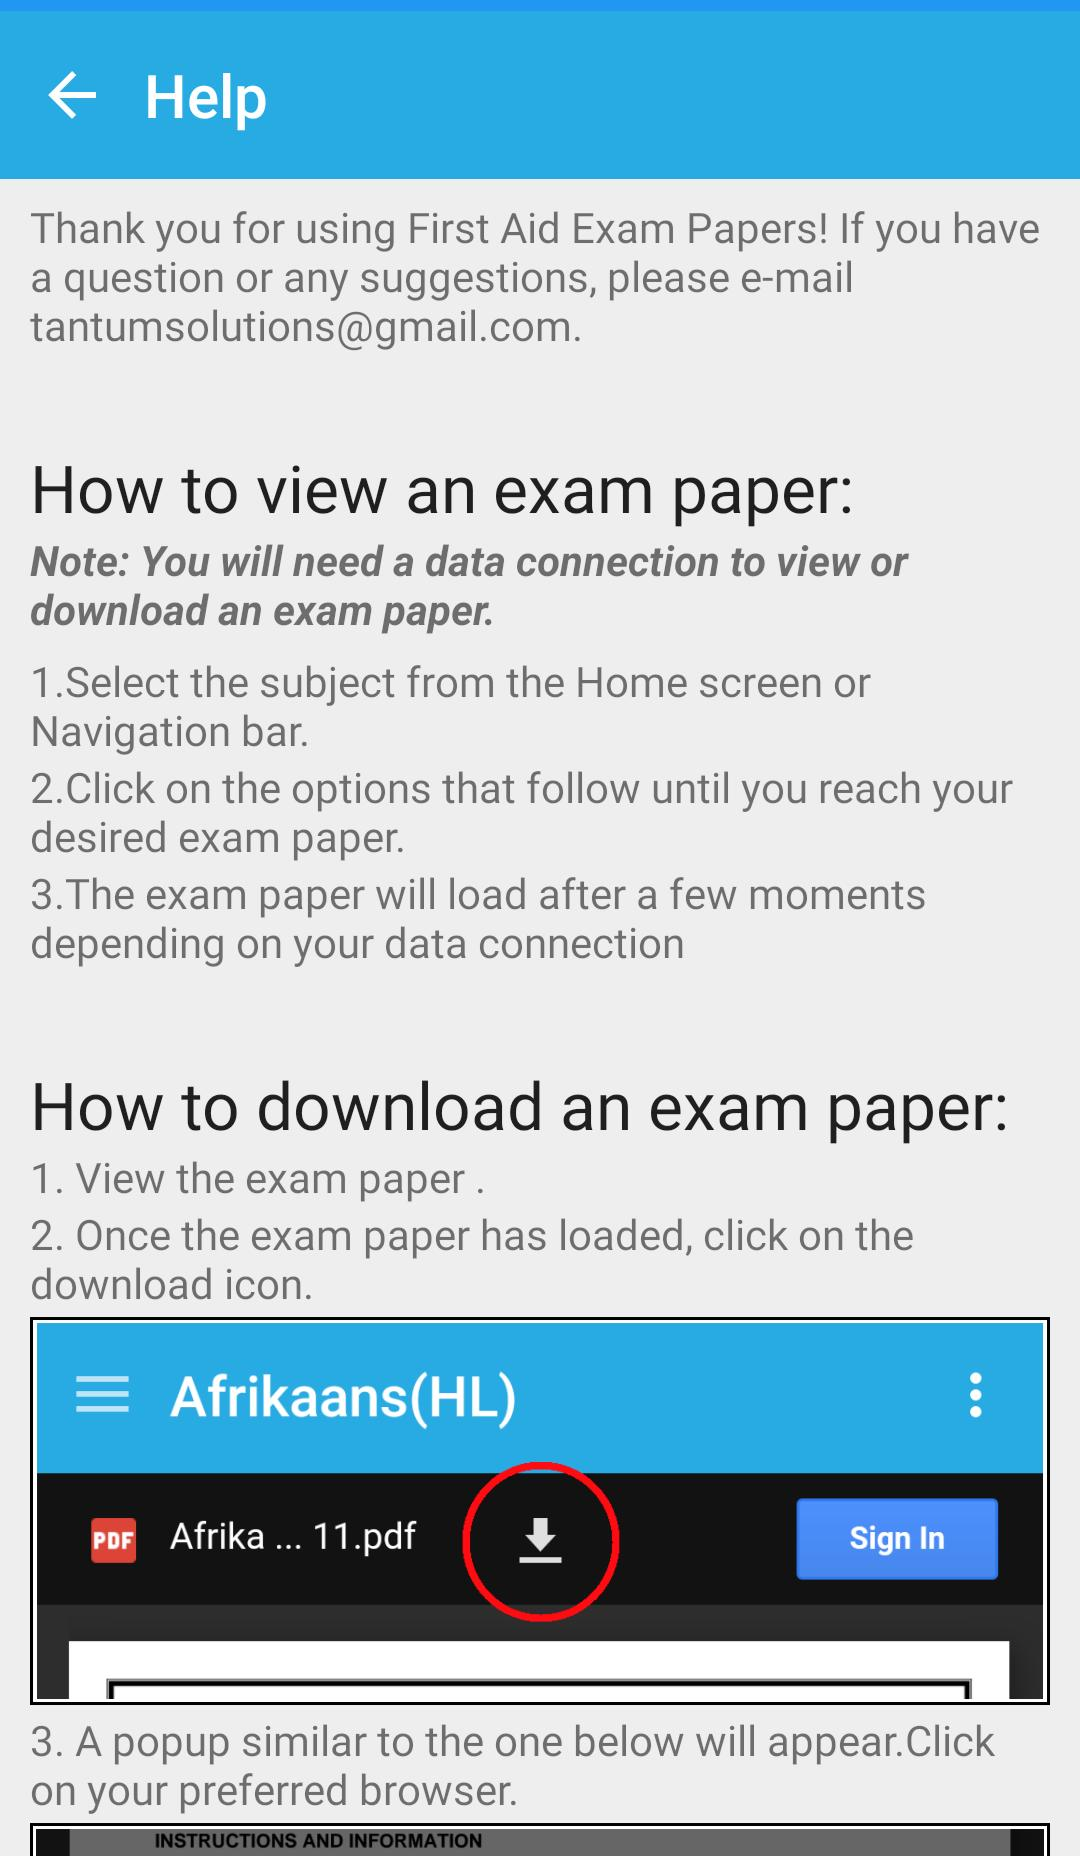 First Aid Exam Papers for Android - APK Download